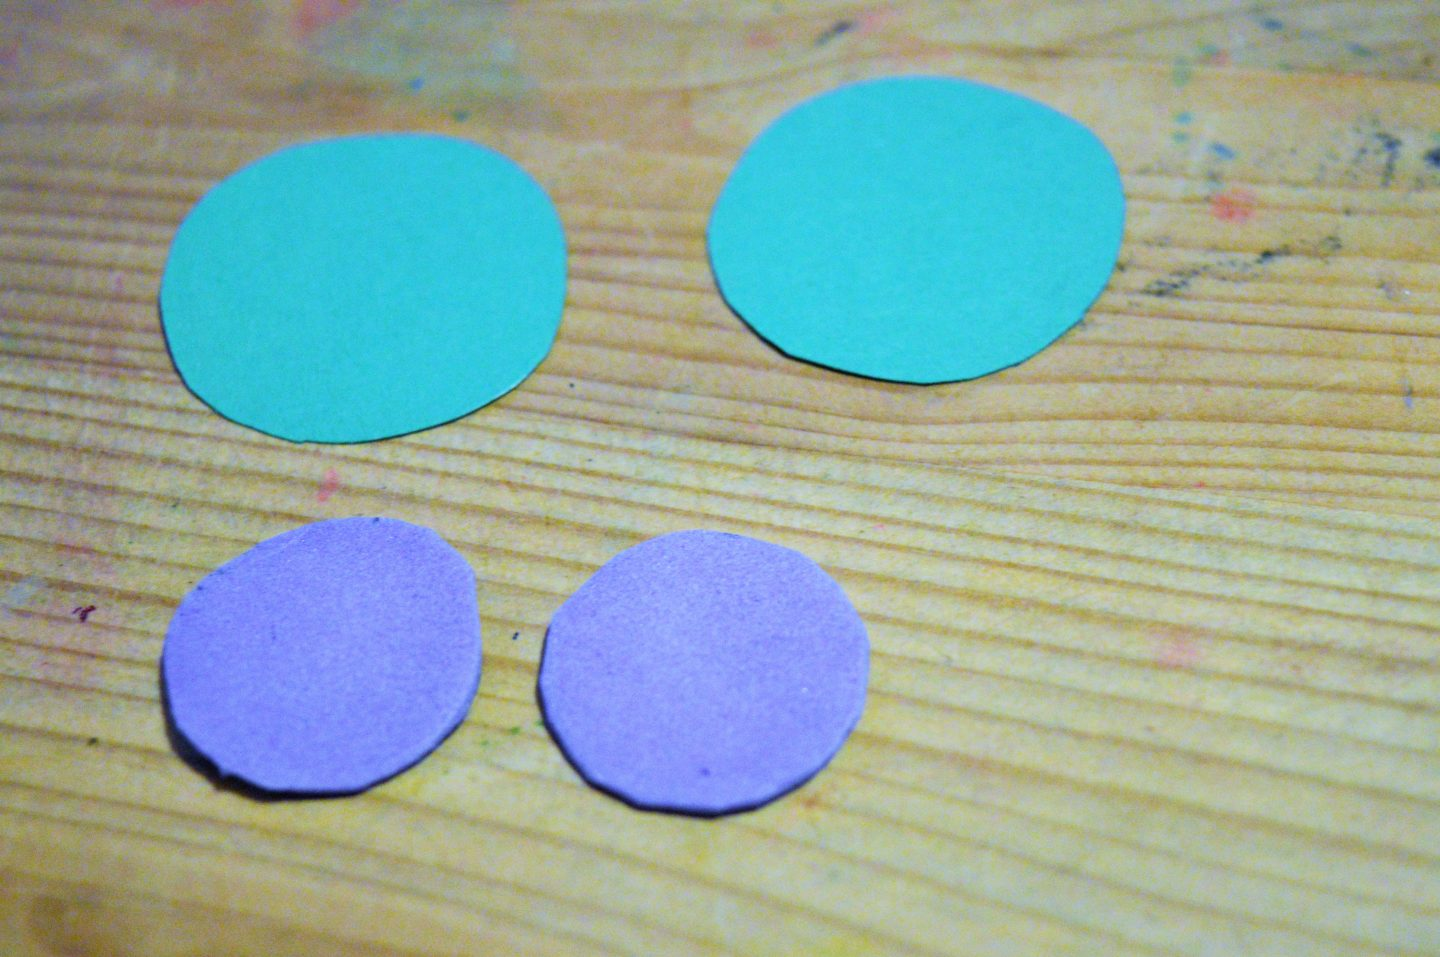 Make a Sweetie Robot Craft four foam circles for eyes, two green, two purple